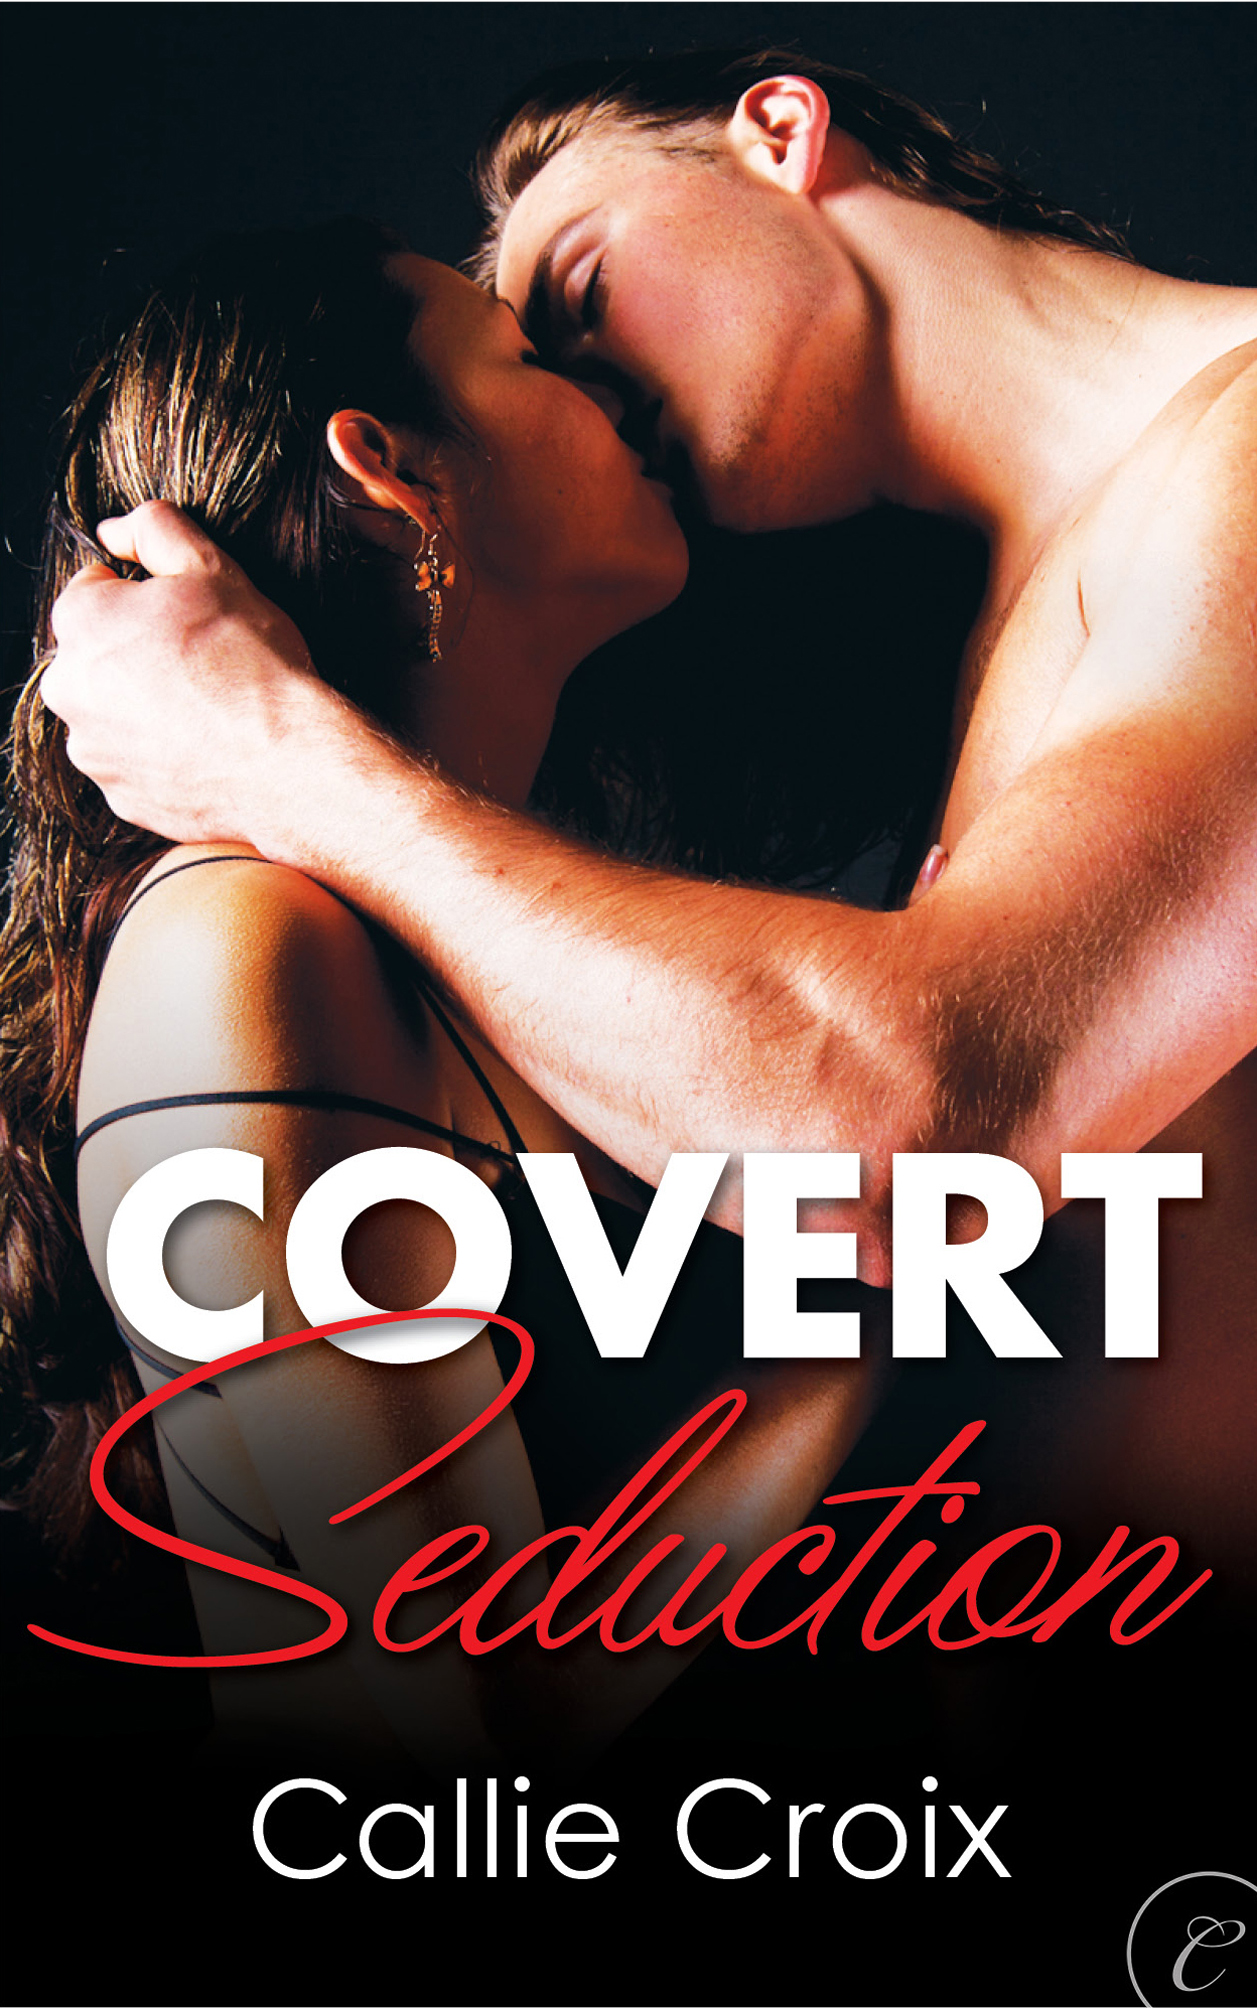 Covert Seduction